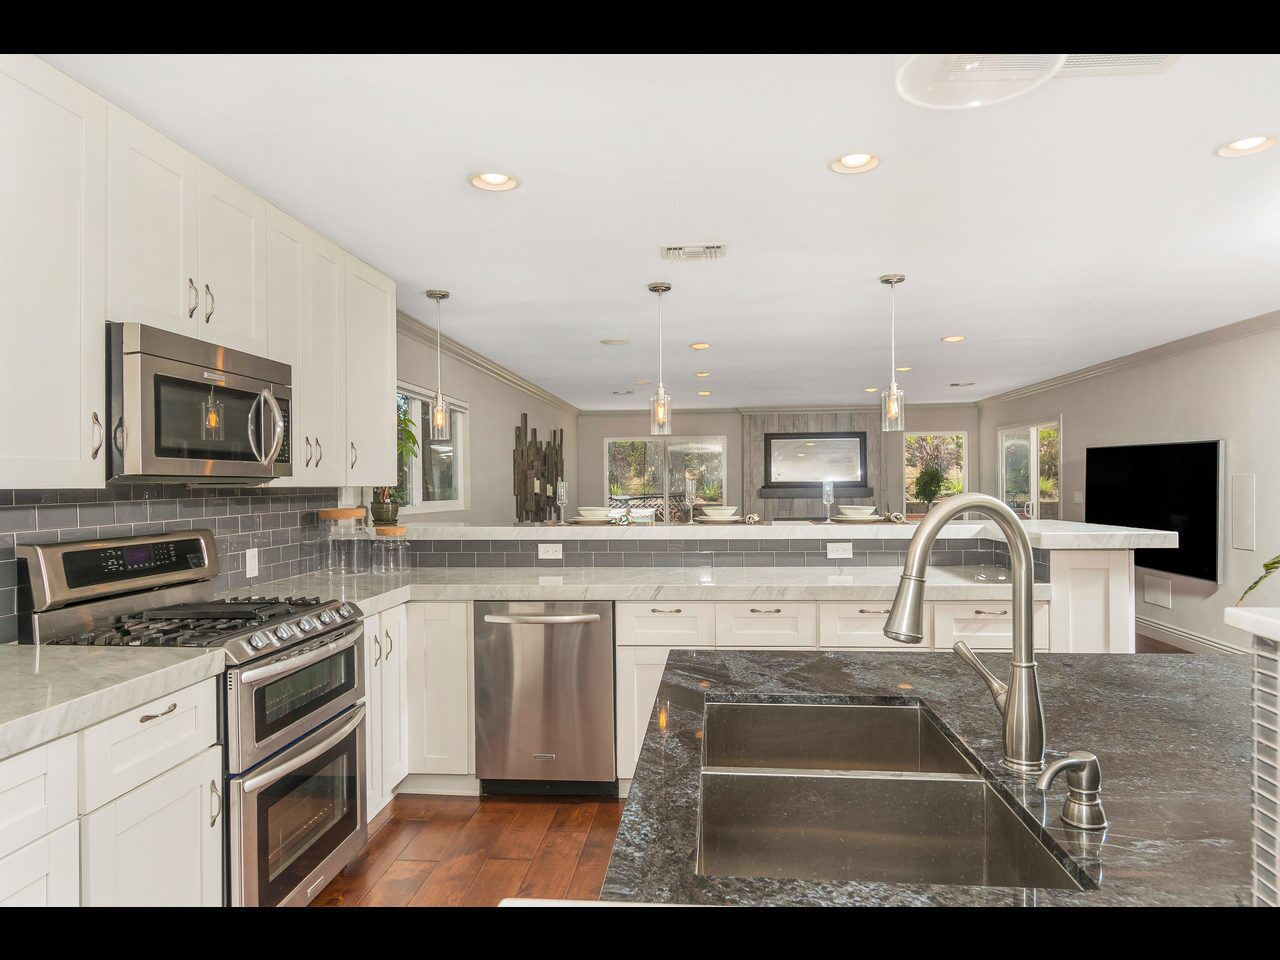 Home of the Day: Smart and style savvy in LaJolla